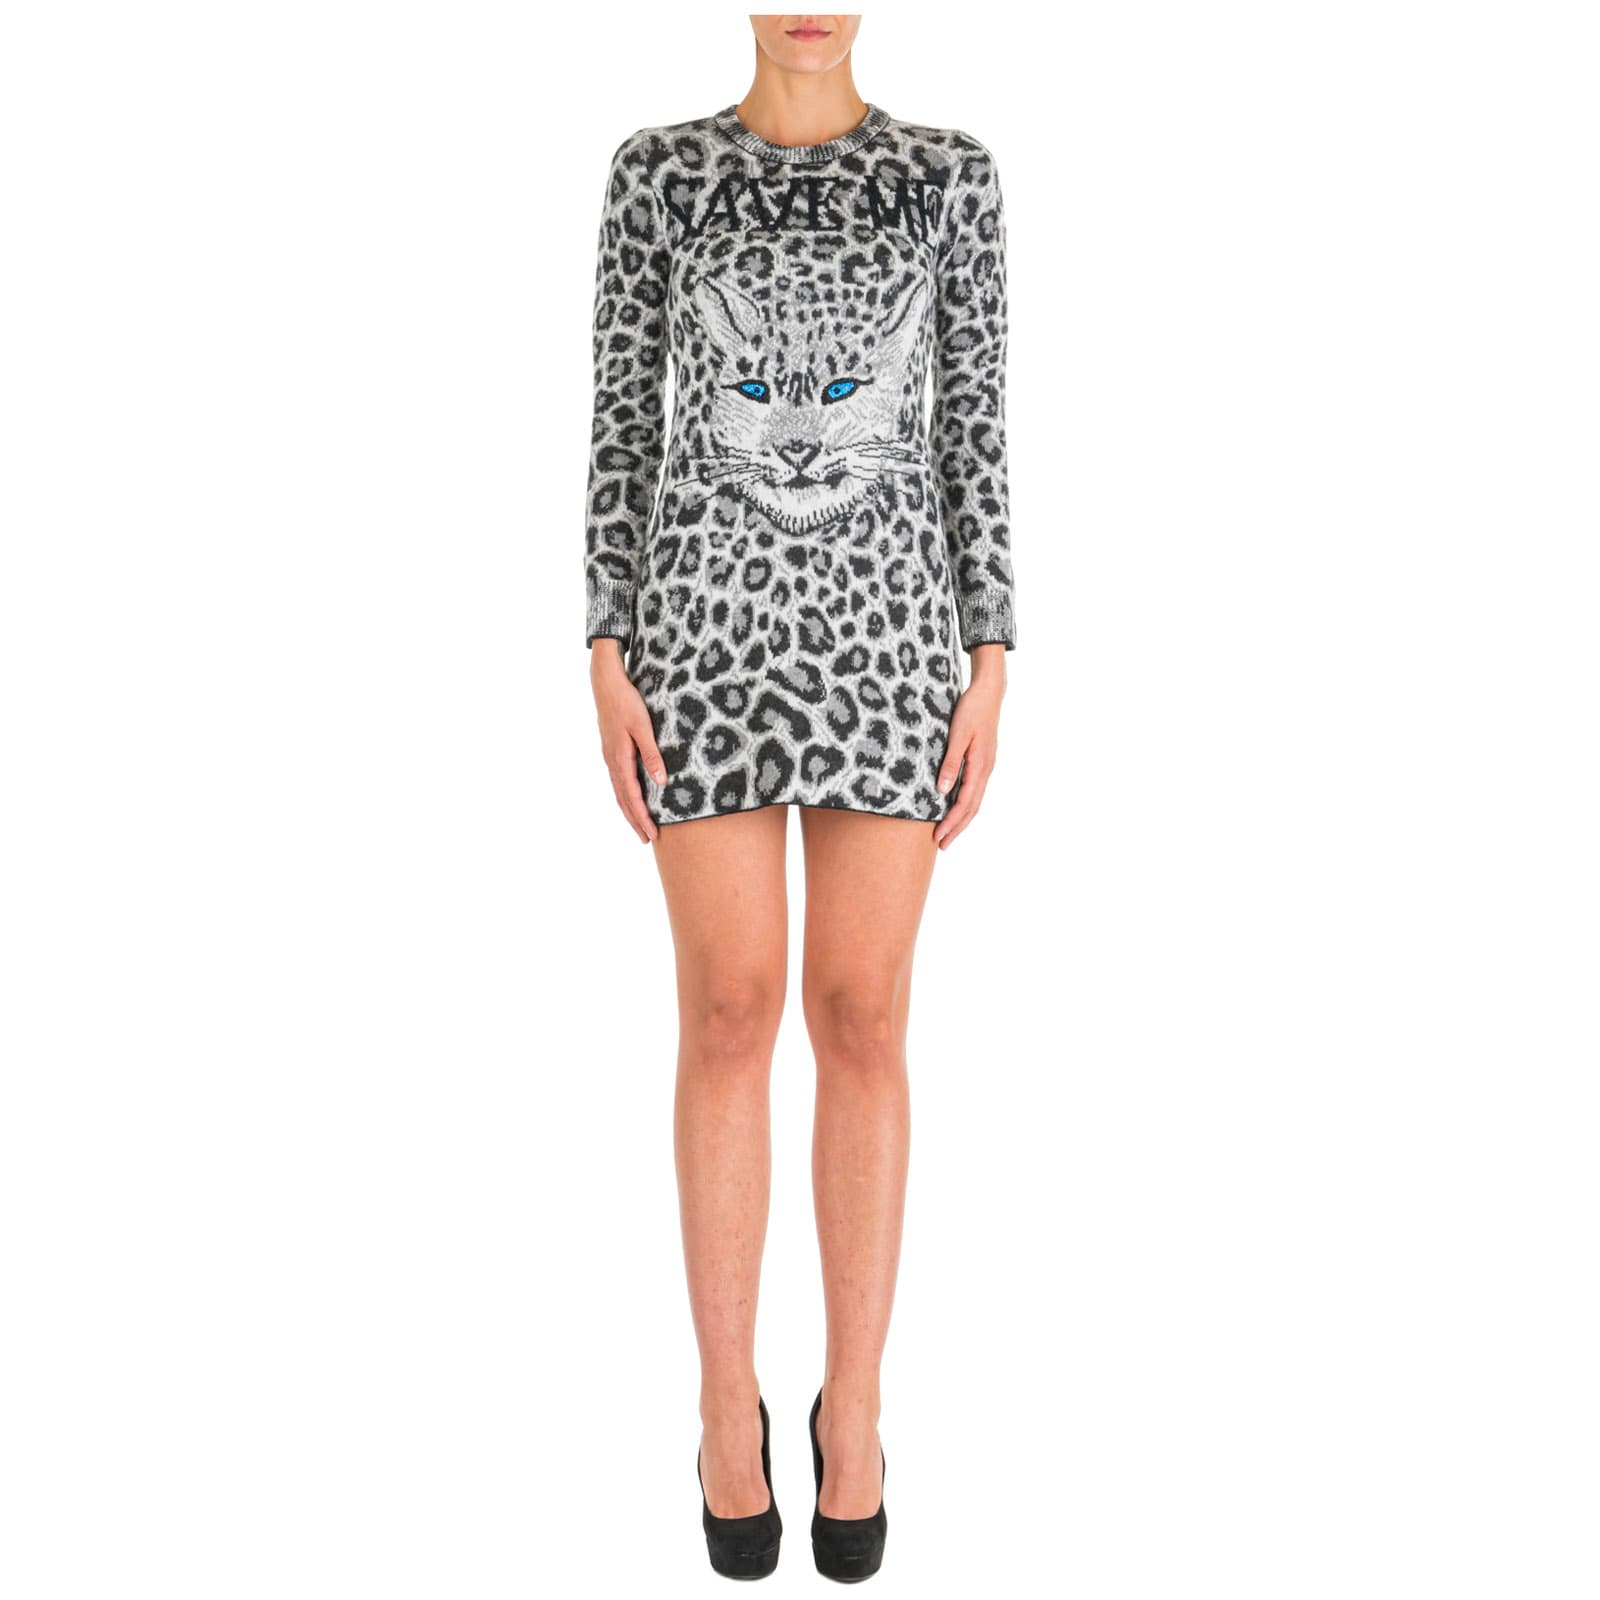 Alberta Ferretti Short Mini Dress Long Sleeve Love Me Wild